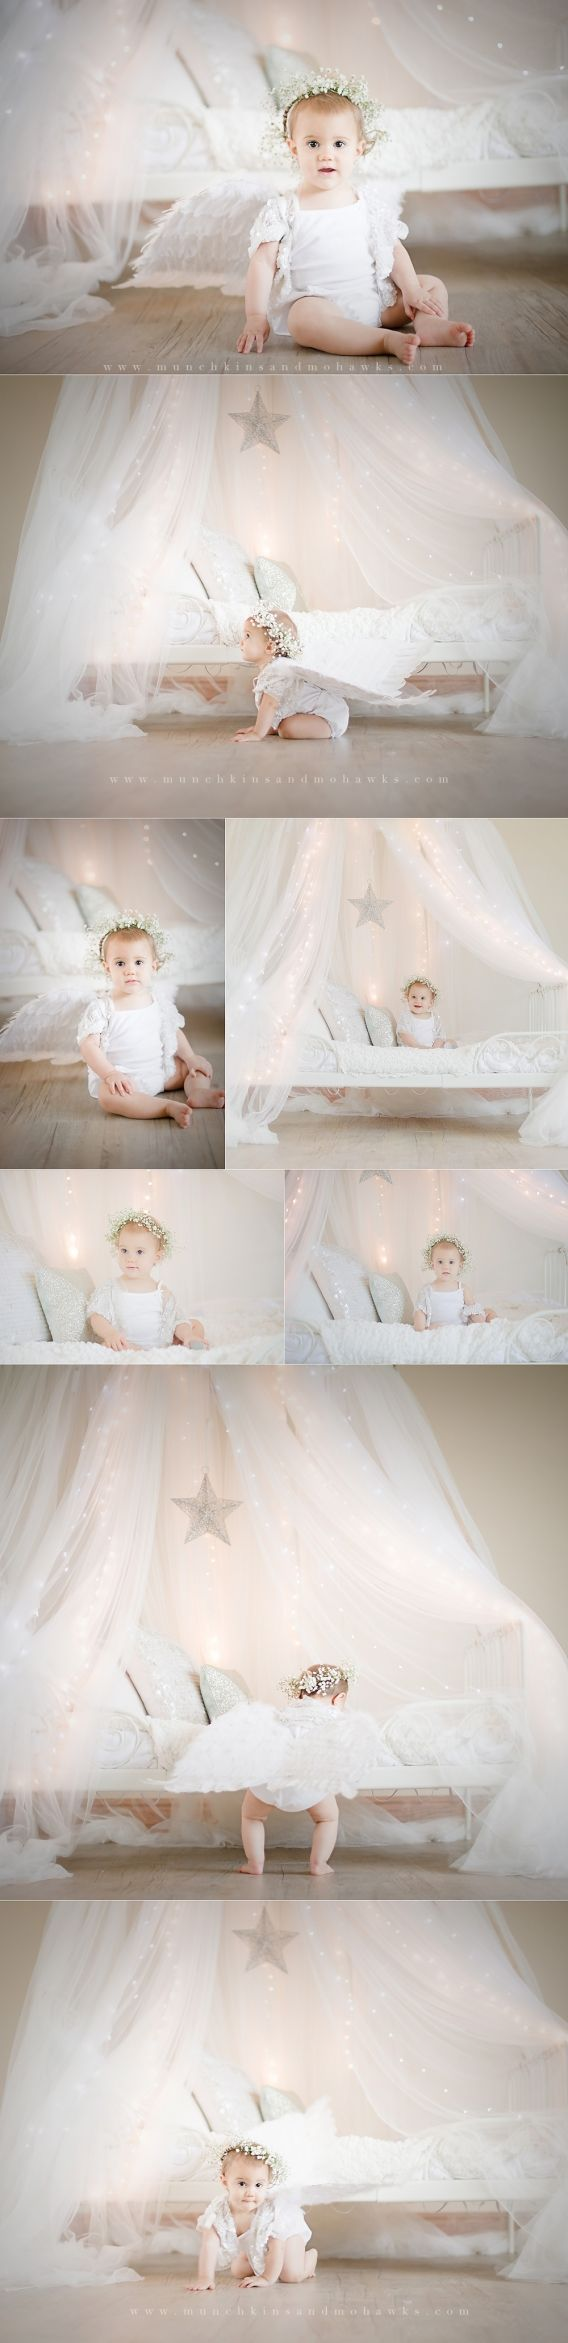 sweet sweet baby | Pittsburgh professional child and baby photographer » Munchkins and Mohawks Photography | Portraits by Tiffany Amber